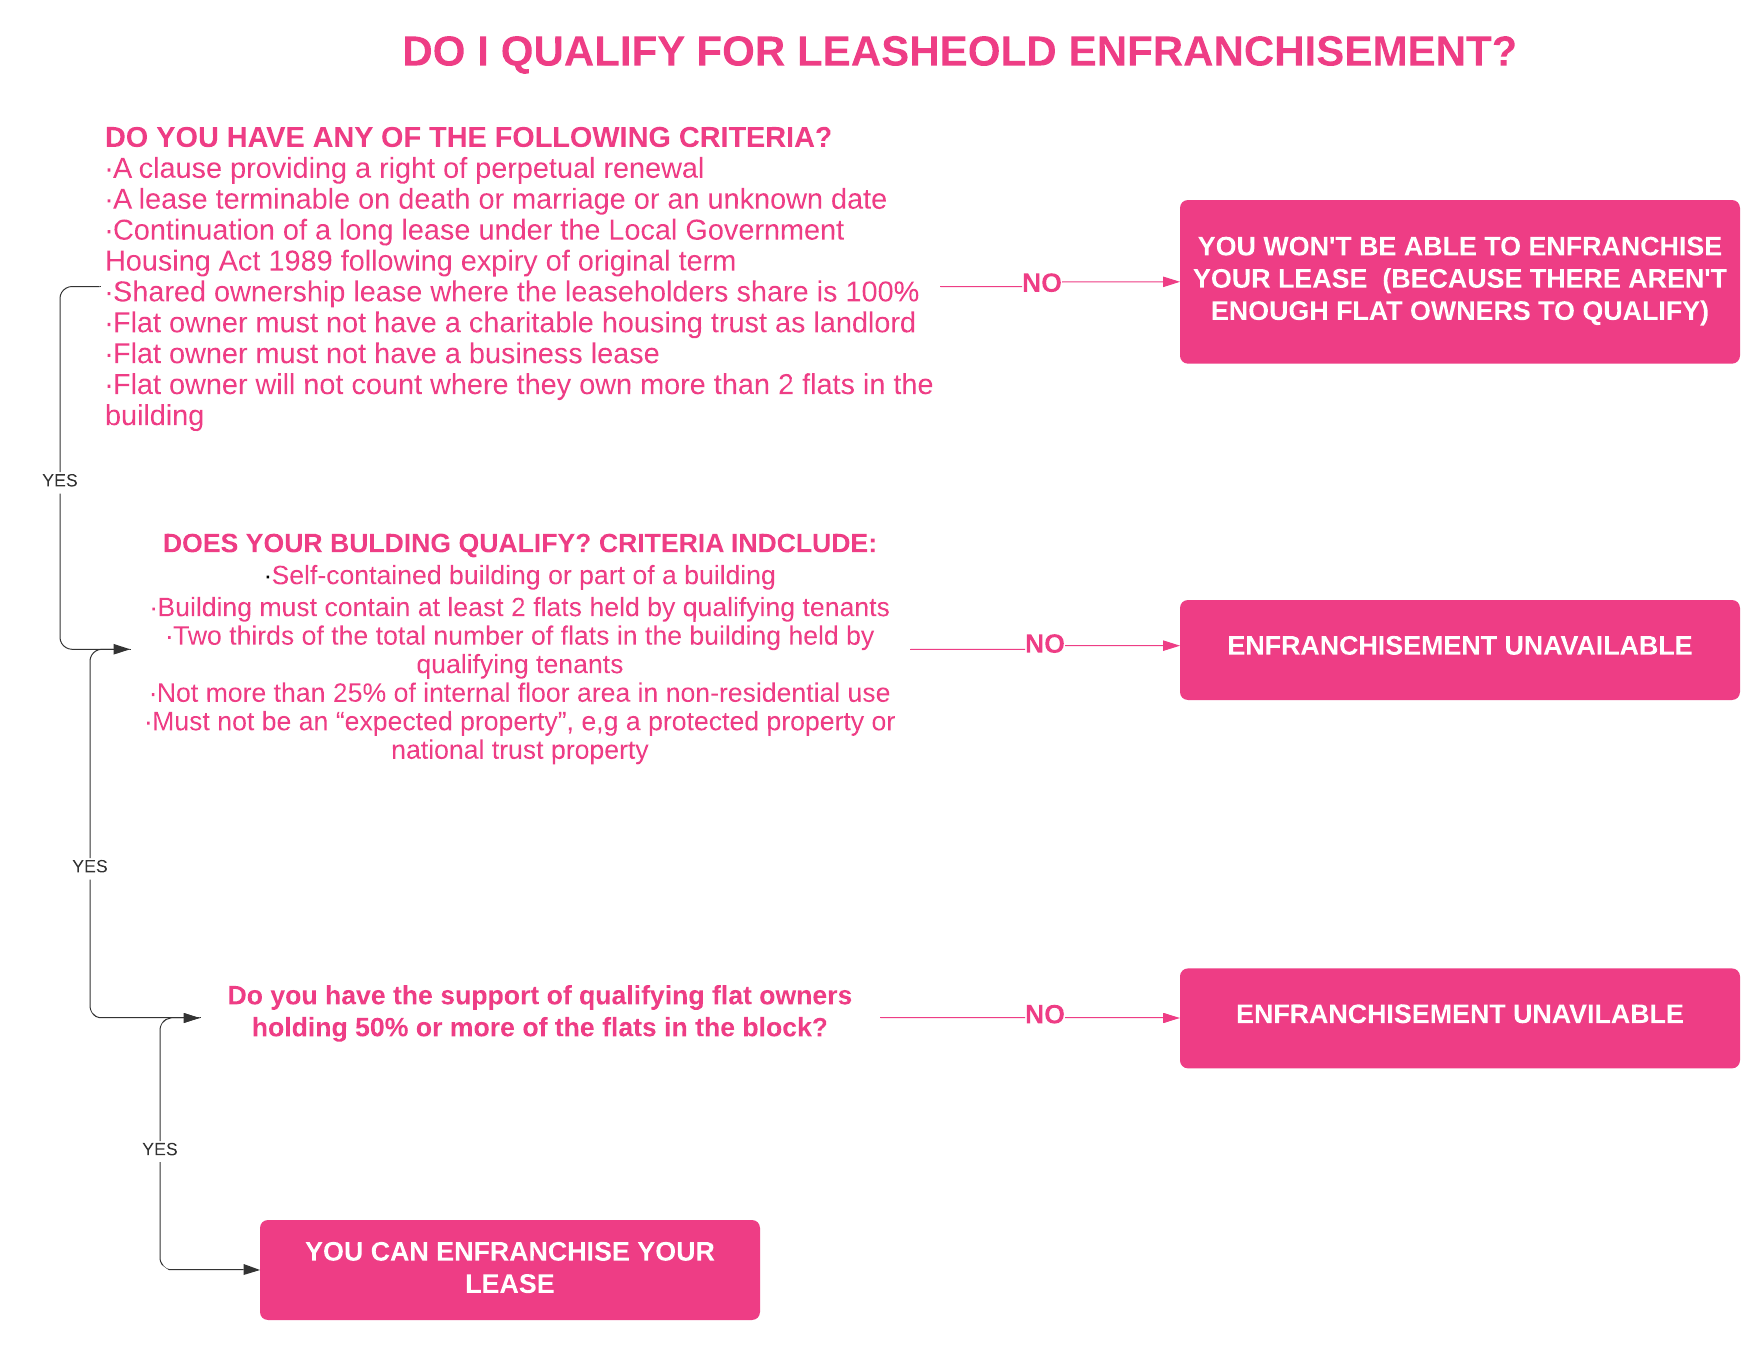 LGBT Lawyers Can I Enfranchise My Lease Flowchart